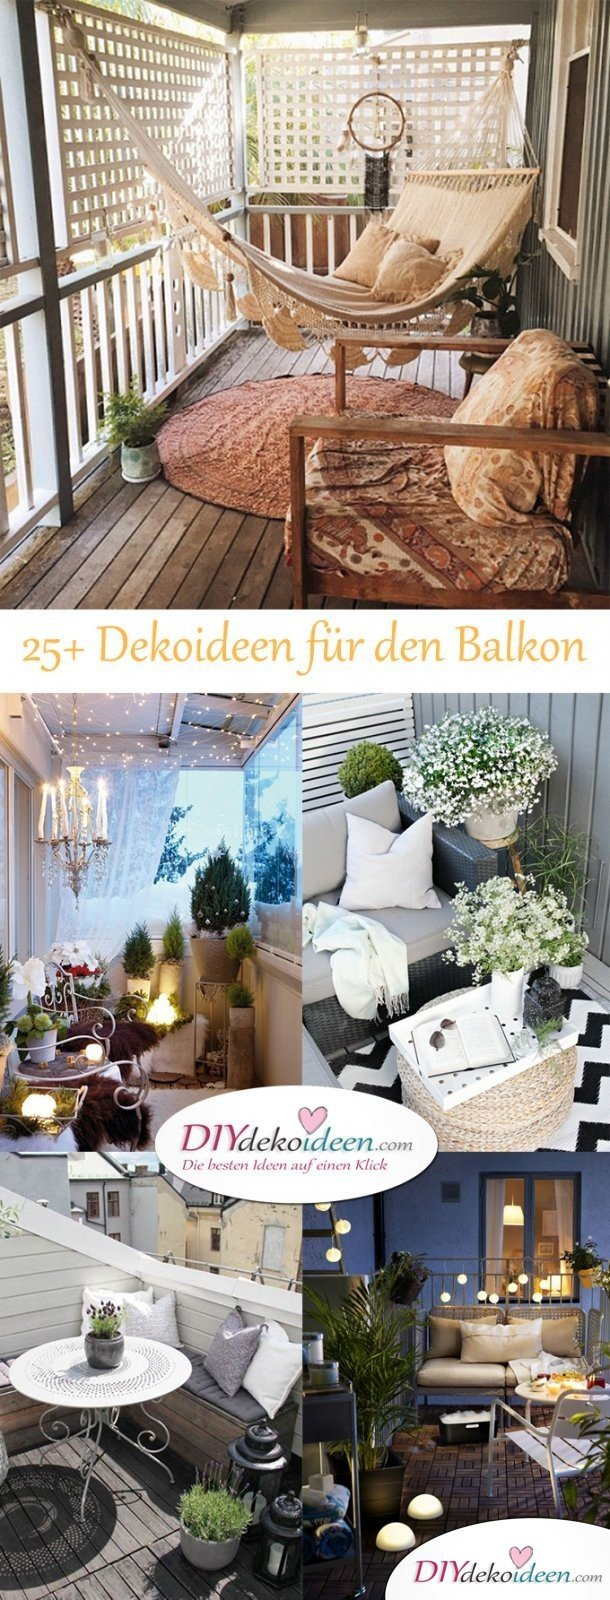 So Lässt Sich Dein Balkon Dekorieren Tolle Diy Dekoideen Für Dein Zuhause Decor Object Your Daily Dose Of Best Home Decorating Ideas Interior Design Inspiration